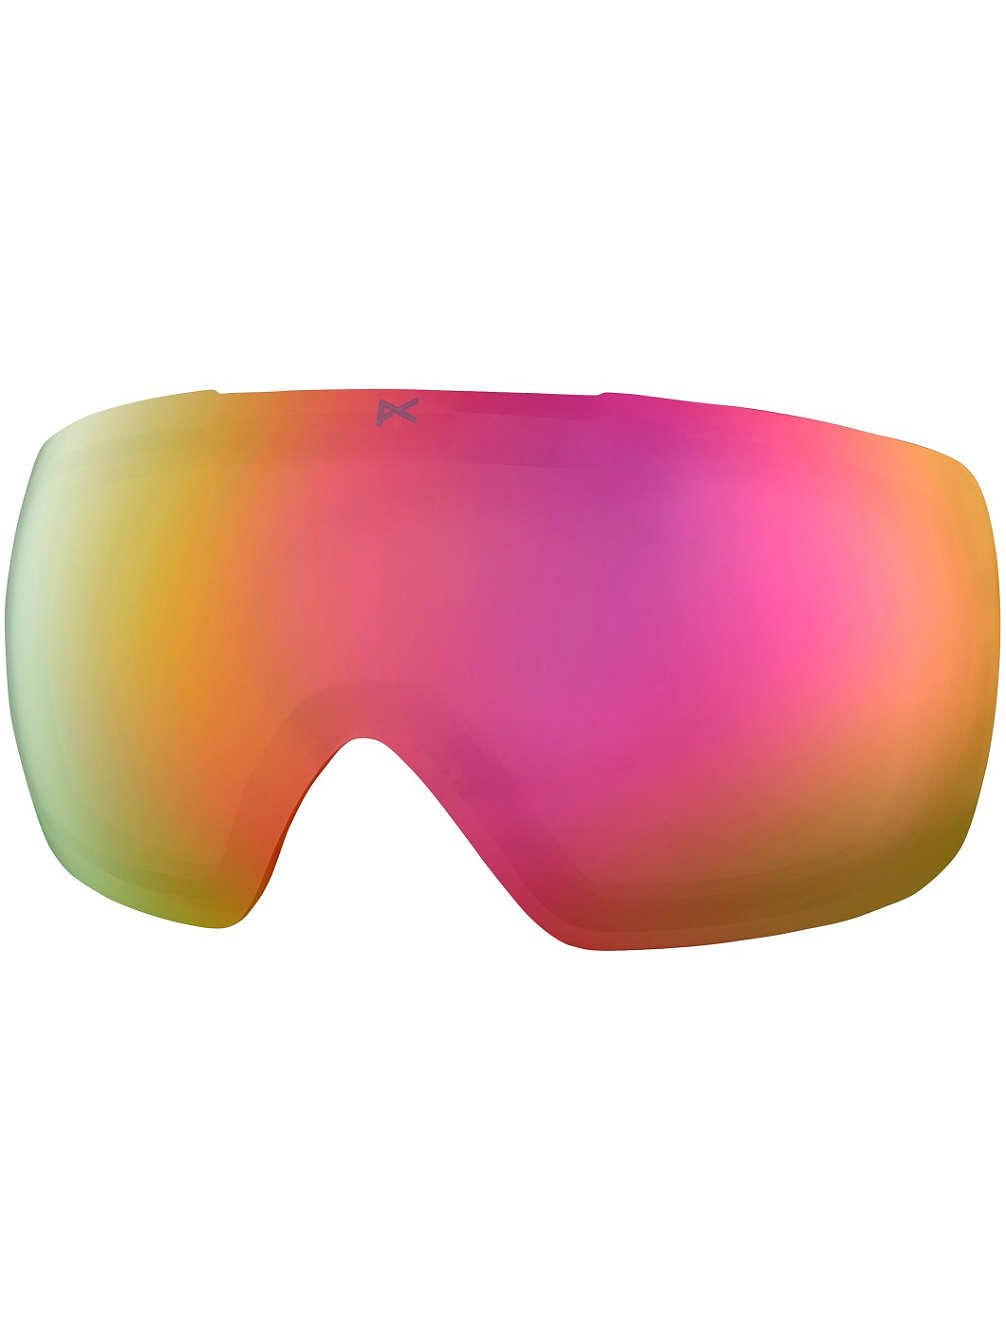 Anon Mig Snow Goggle Replacement Lens Pink SQ Mirror 35% VLT